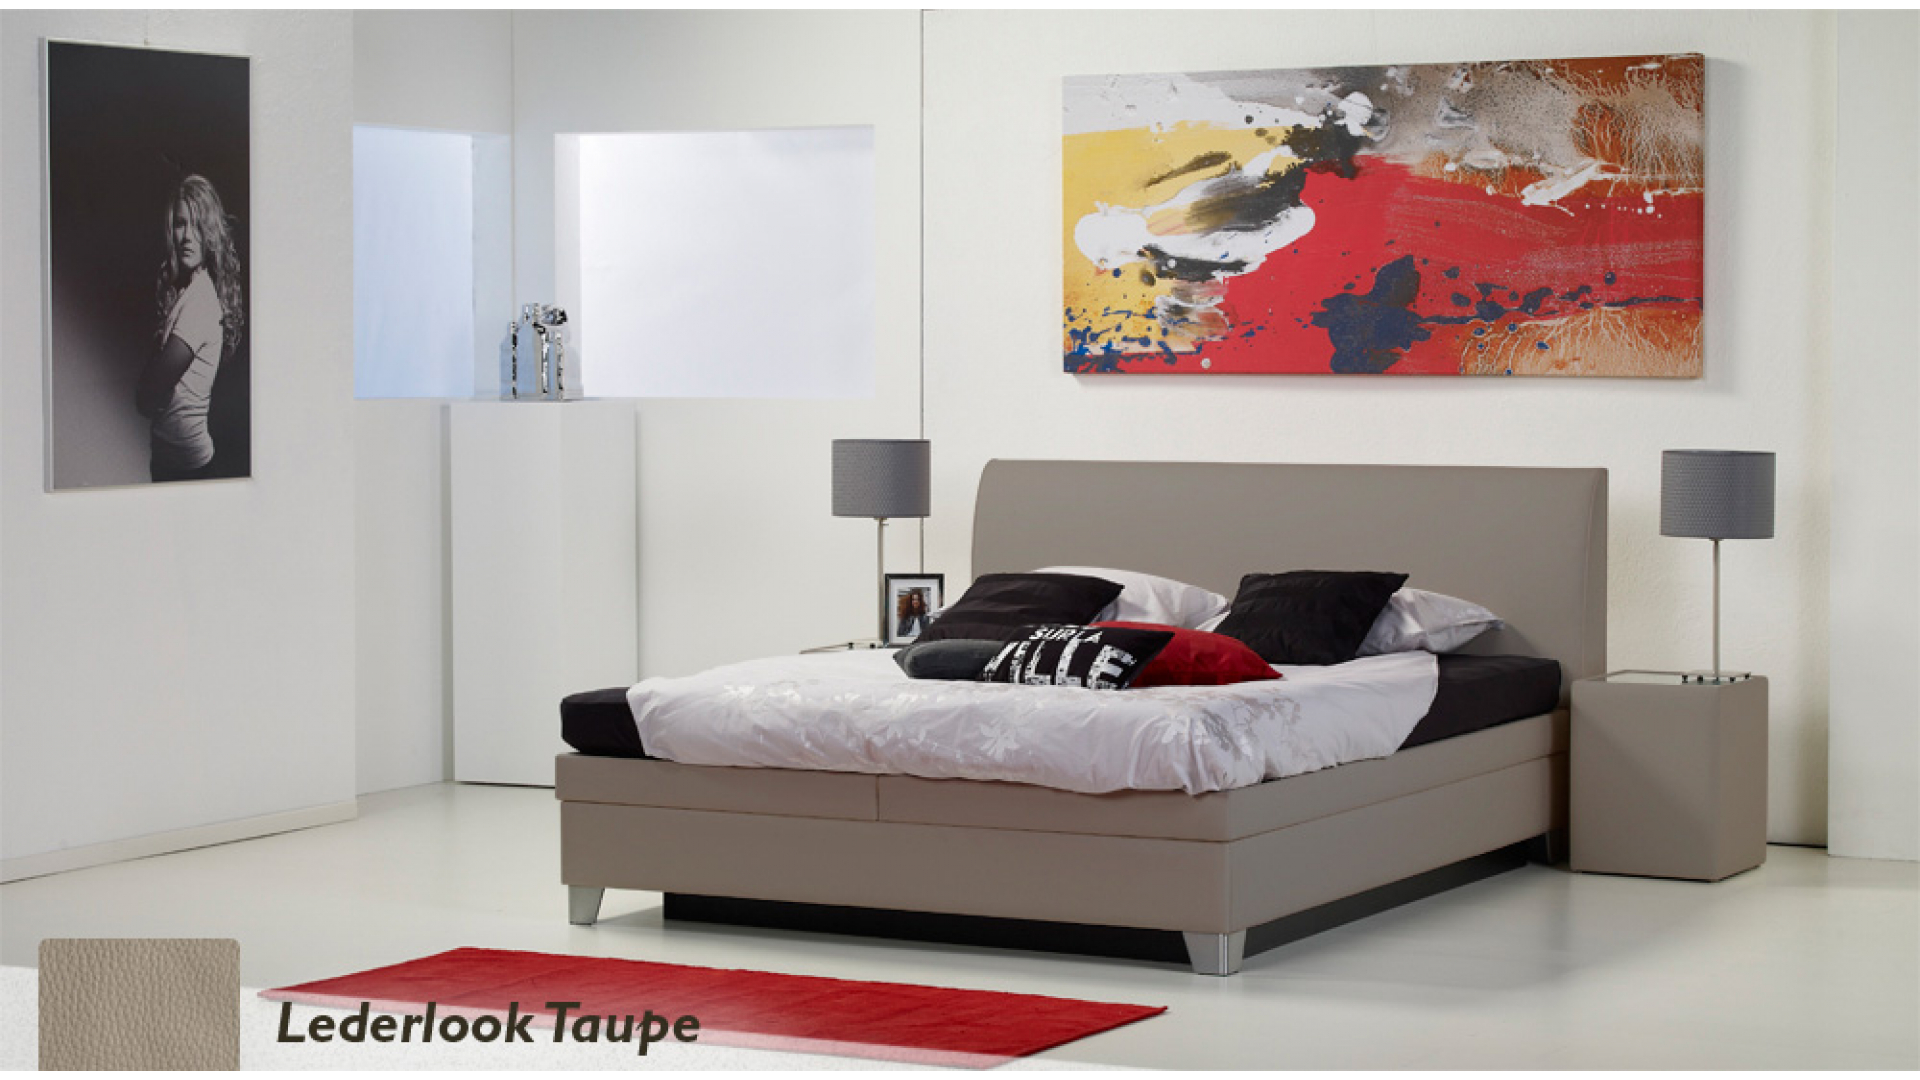 waterbed luxe box pro lederlook taupe